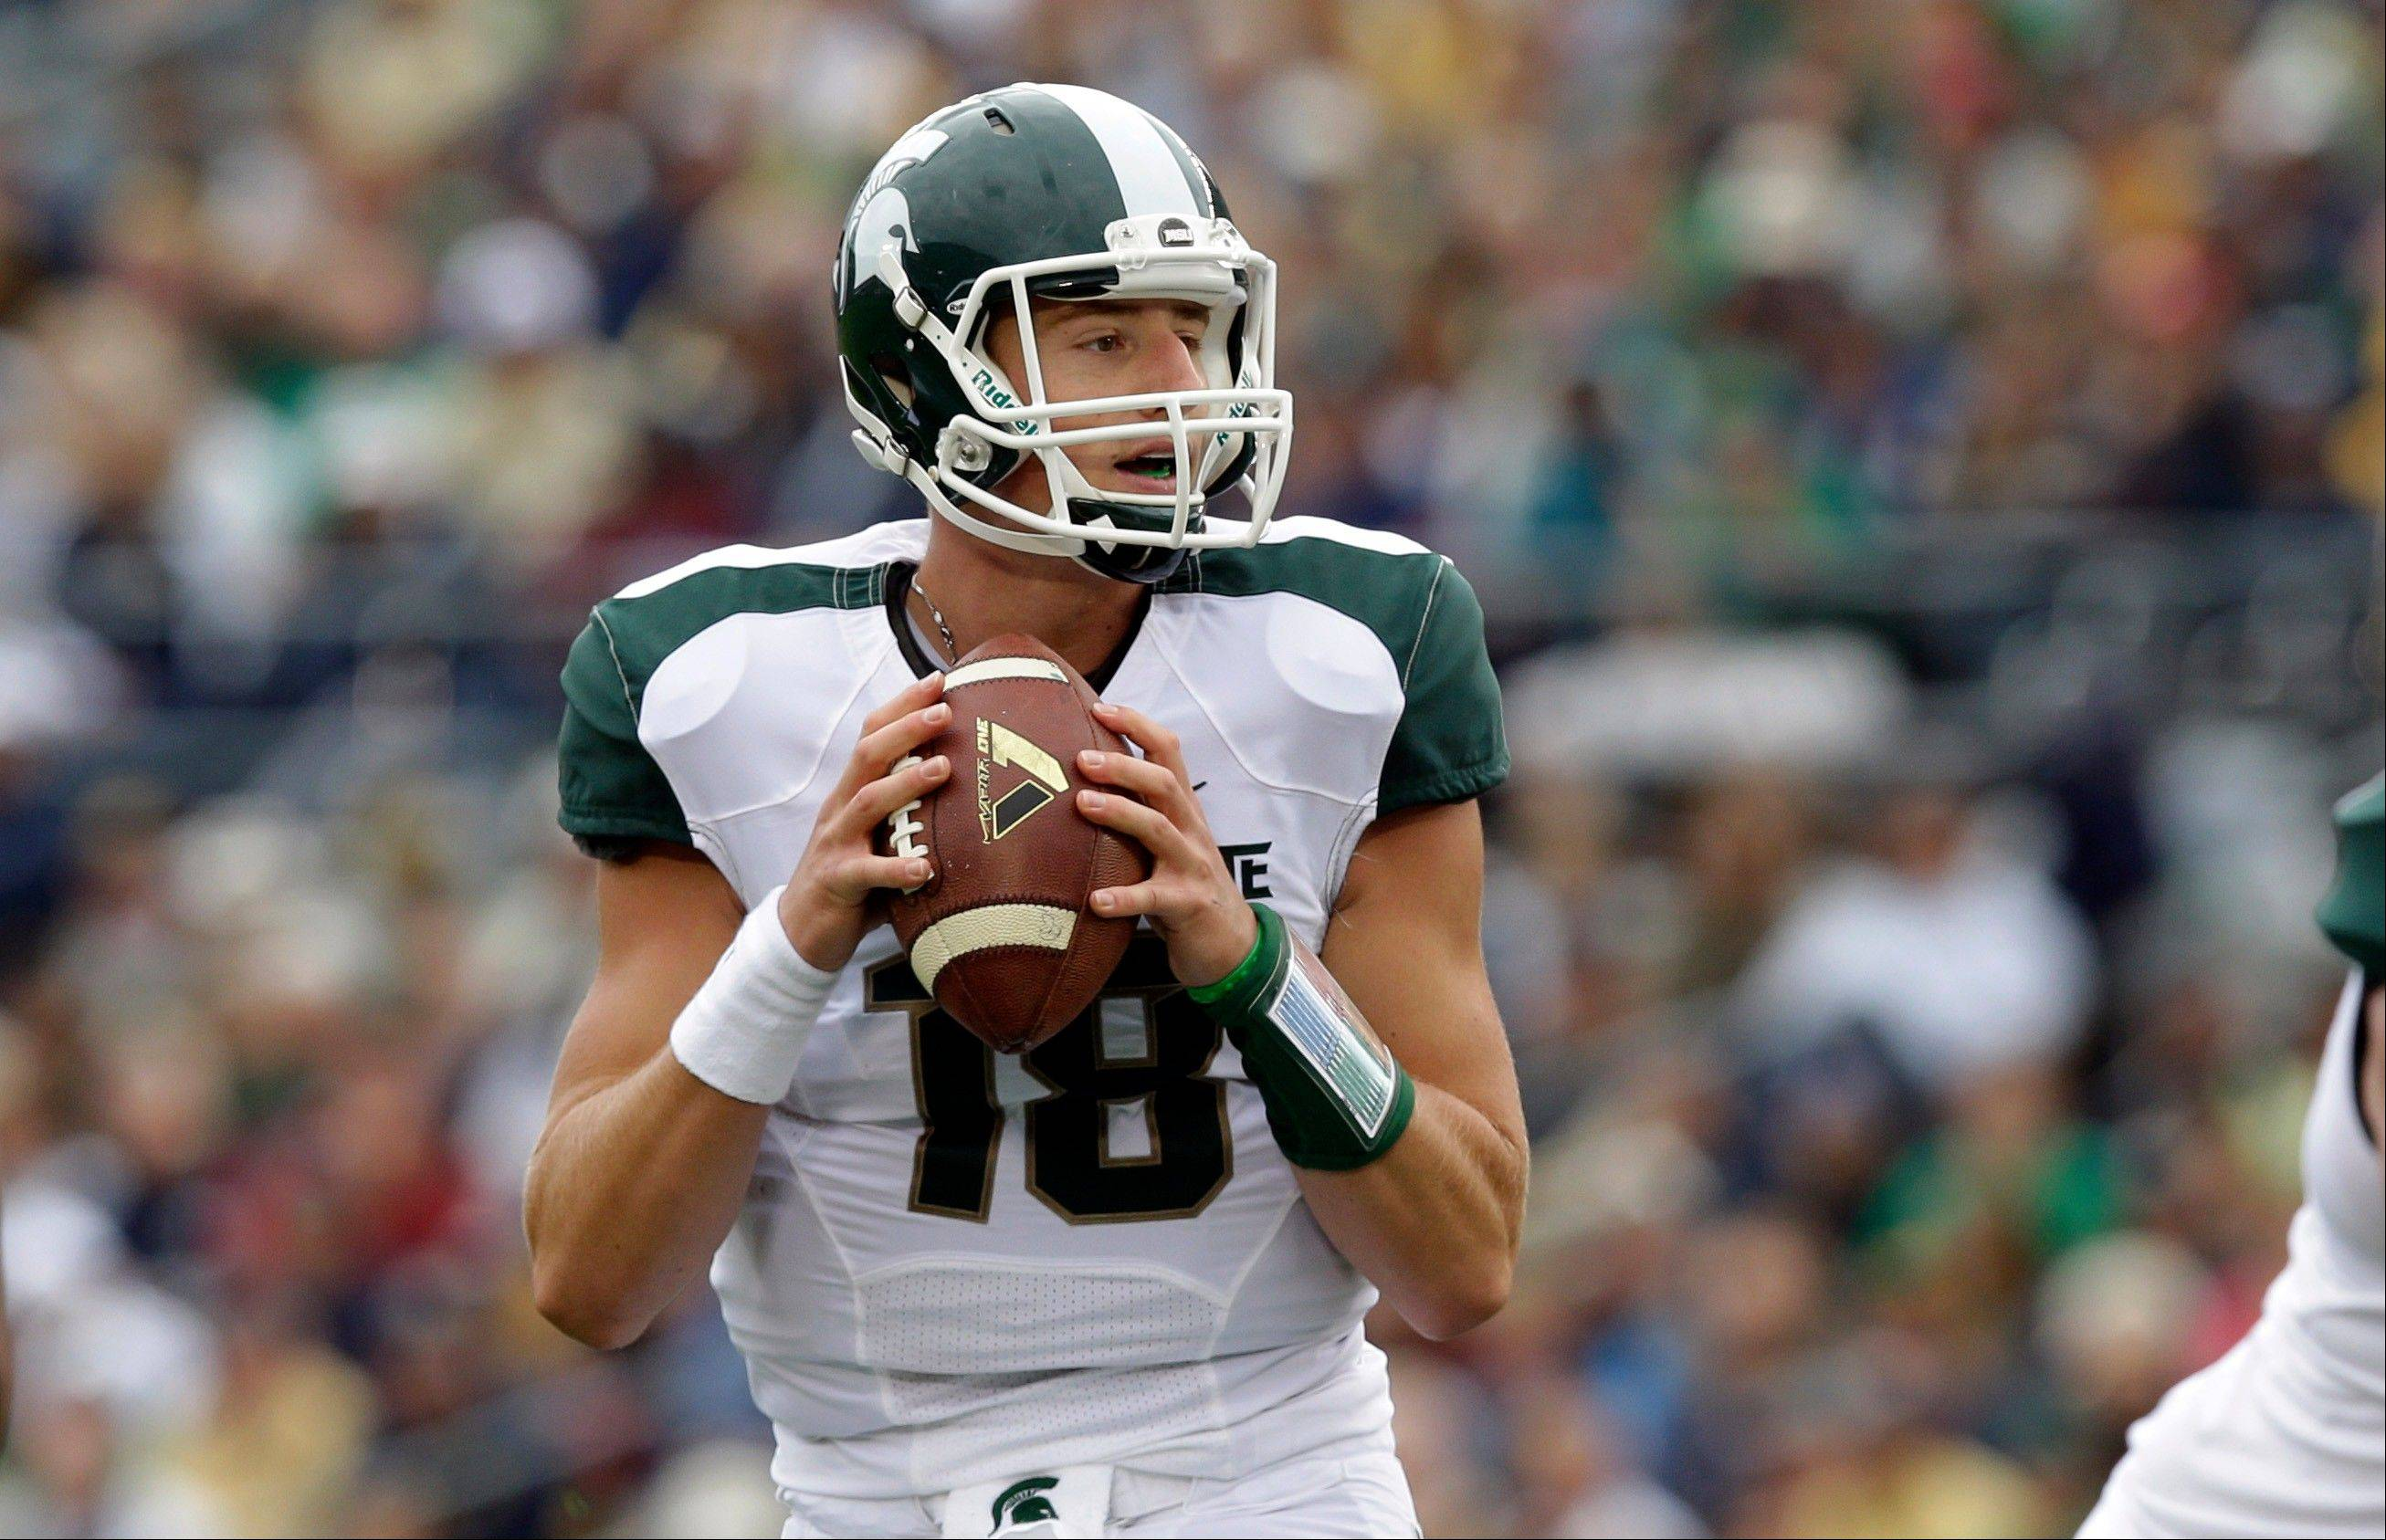 Cook remains starting QB for Michigan State